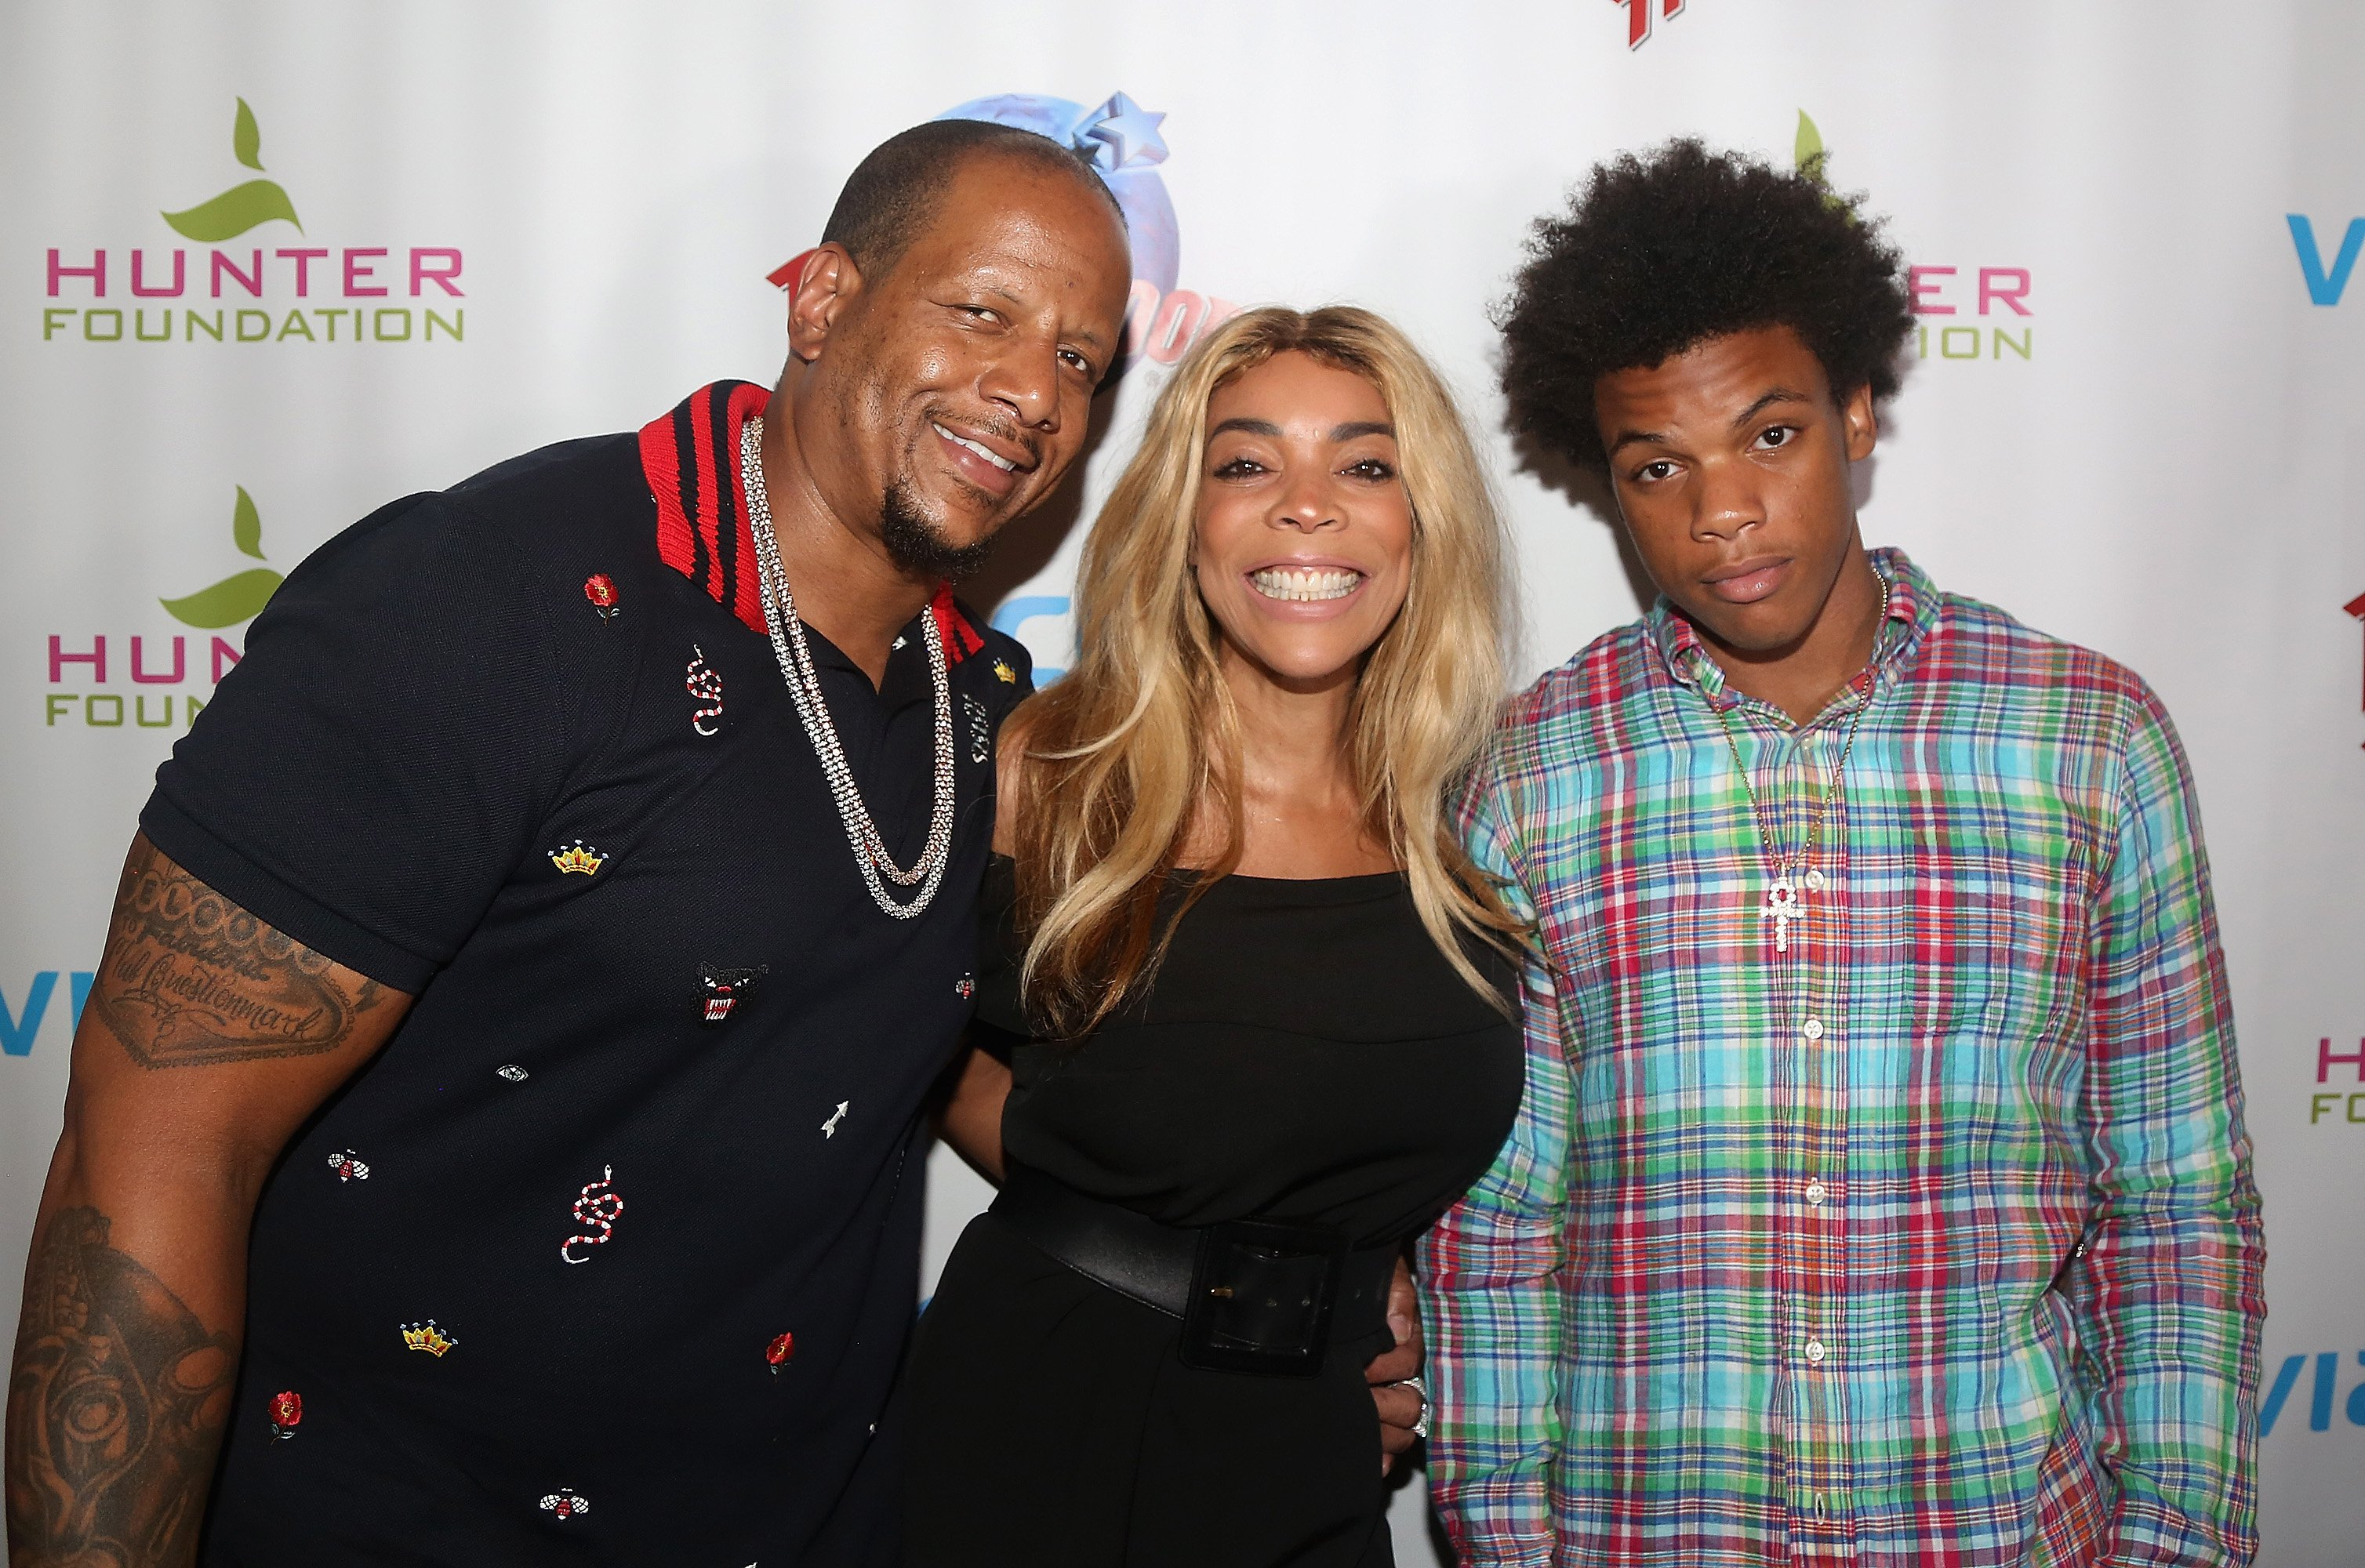 Kevin Hunter, Sr., Wendy Williams and their son, Kevin Hunter, Jr. celebrating The Hunter Foundation on July 11, 2017 at Planet Hollywood Times Square.   Source: Getty Images